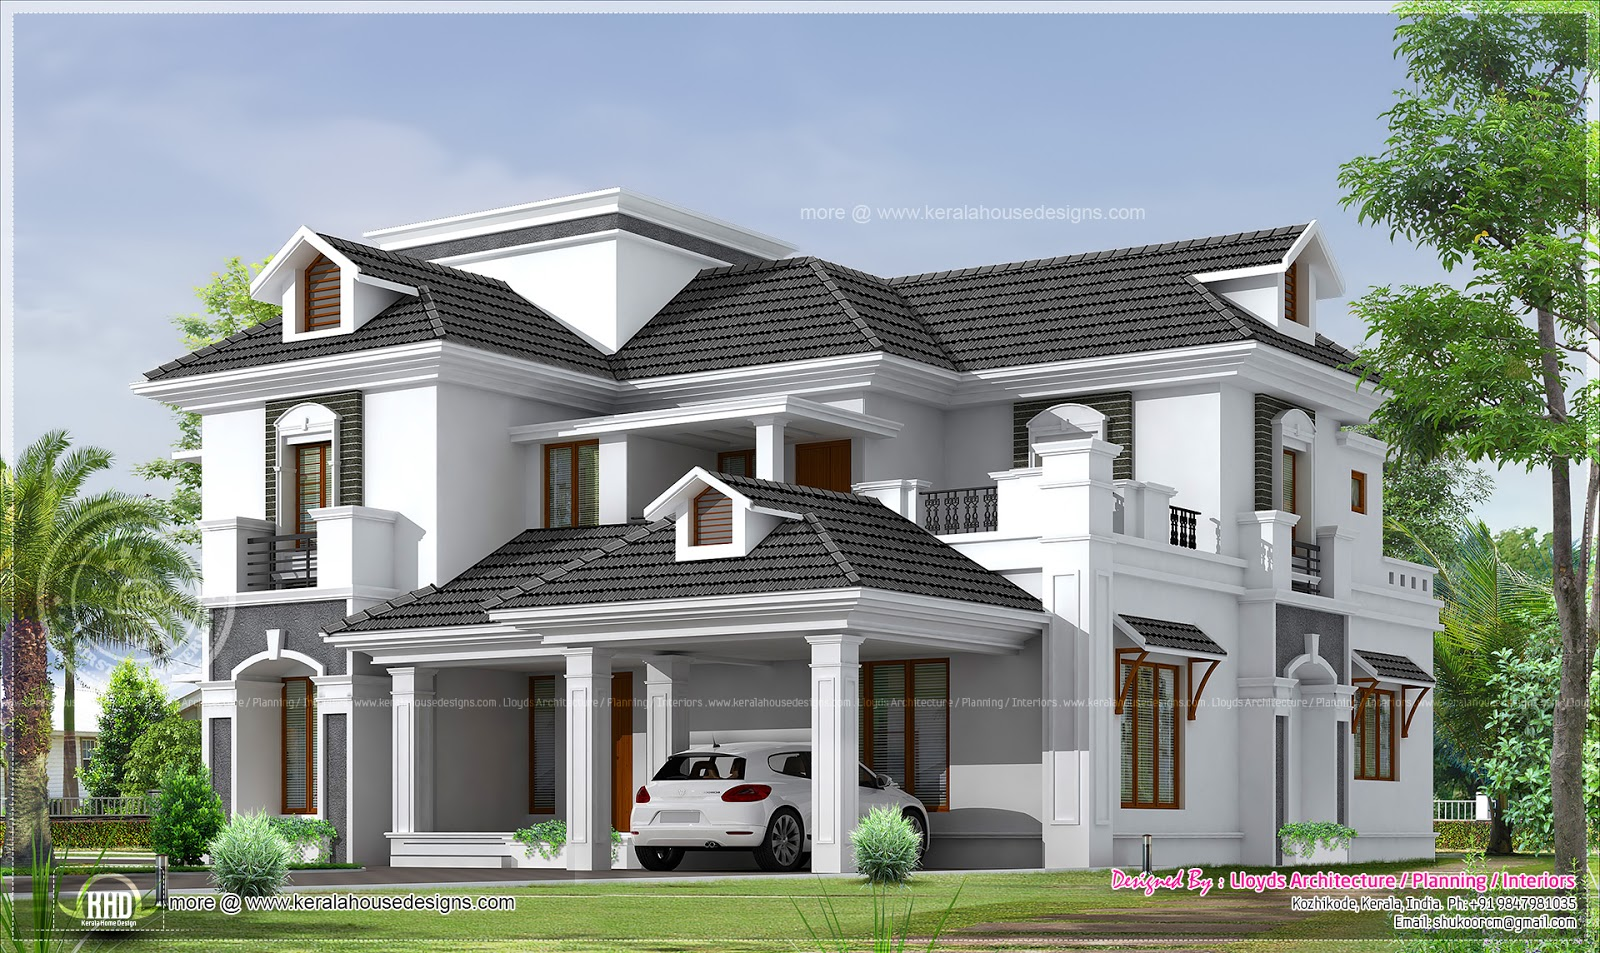 4 bedroom house designs simple 4 bedroom house plans 4 for Simple house plan with 4 bedrooms